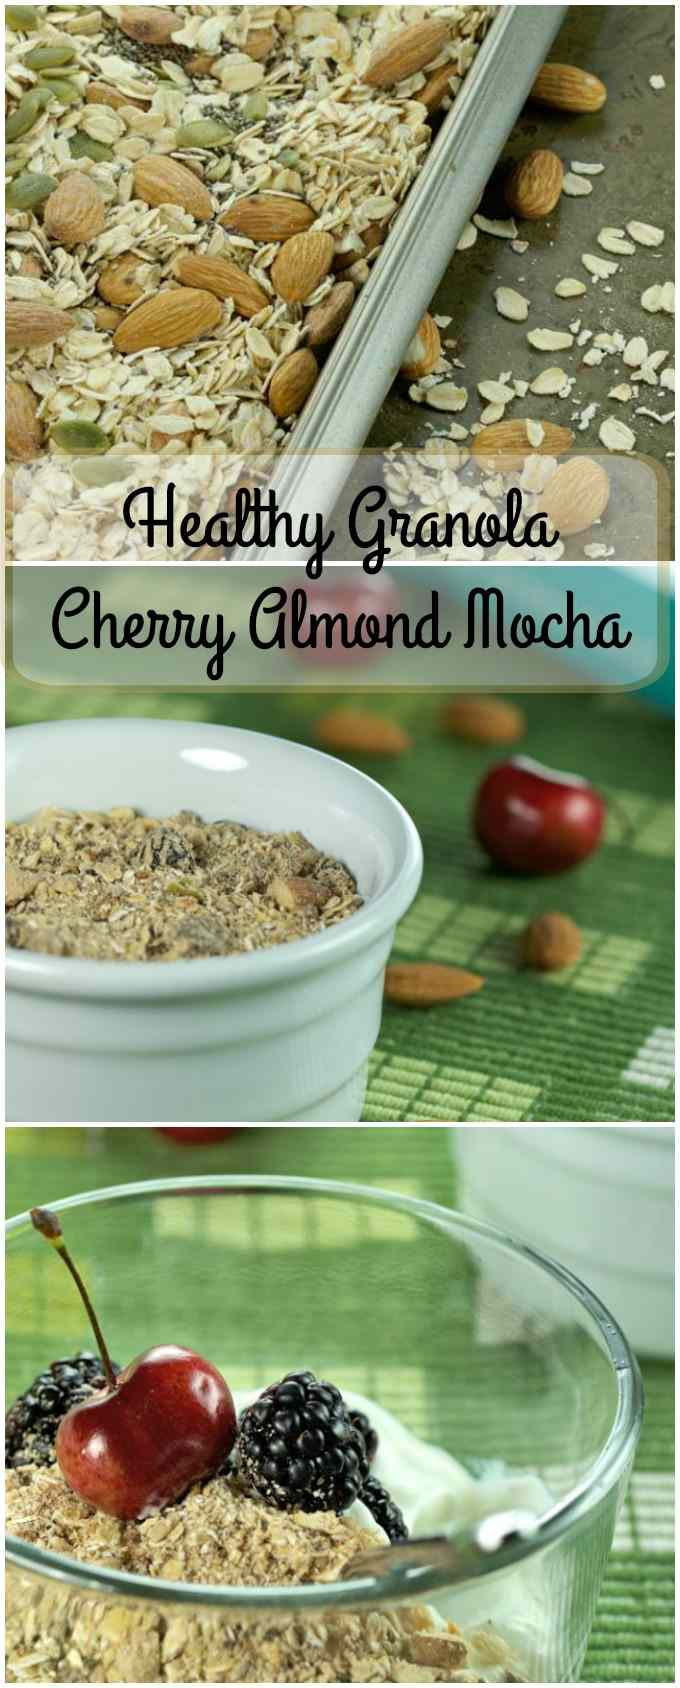 Healthy Granola Cherry Almond Mocha is so easy and delicious. Making artisan granola at home has never been easier. | homemadeandyummy.com